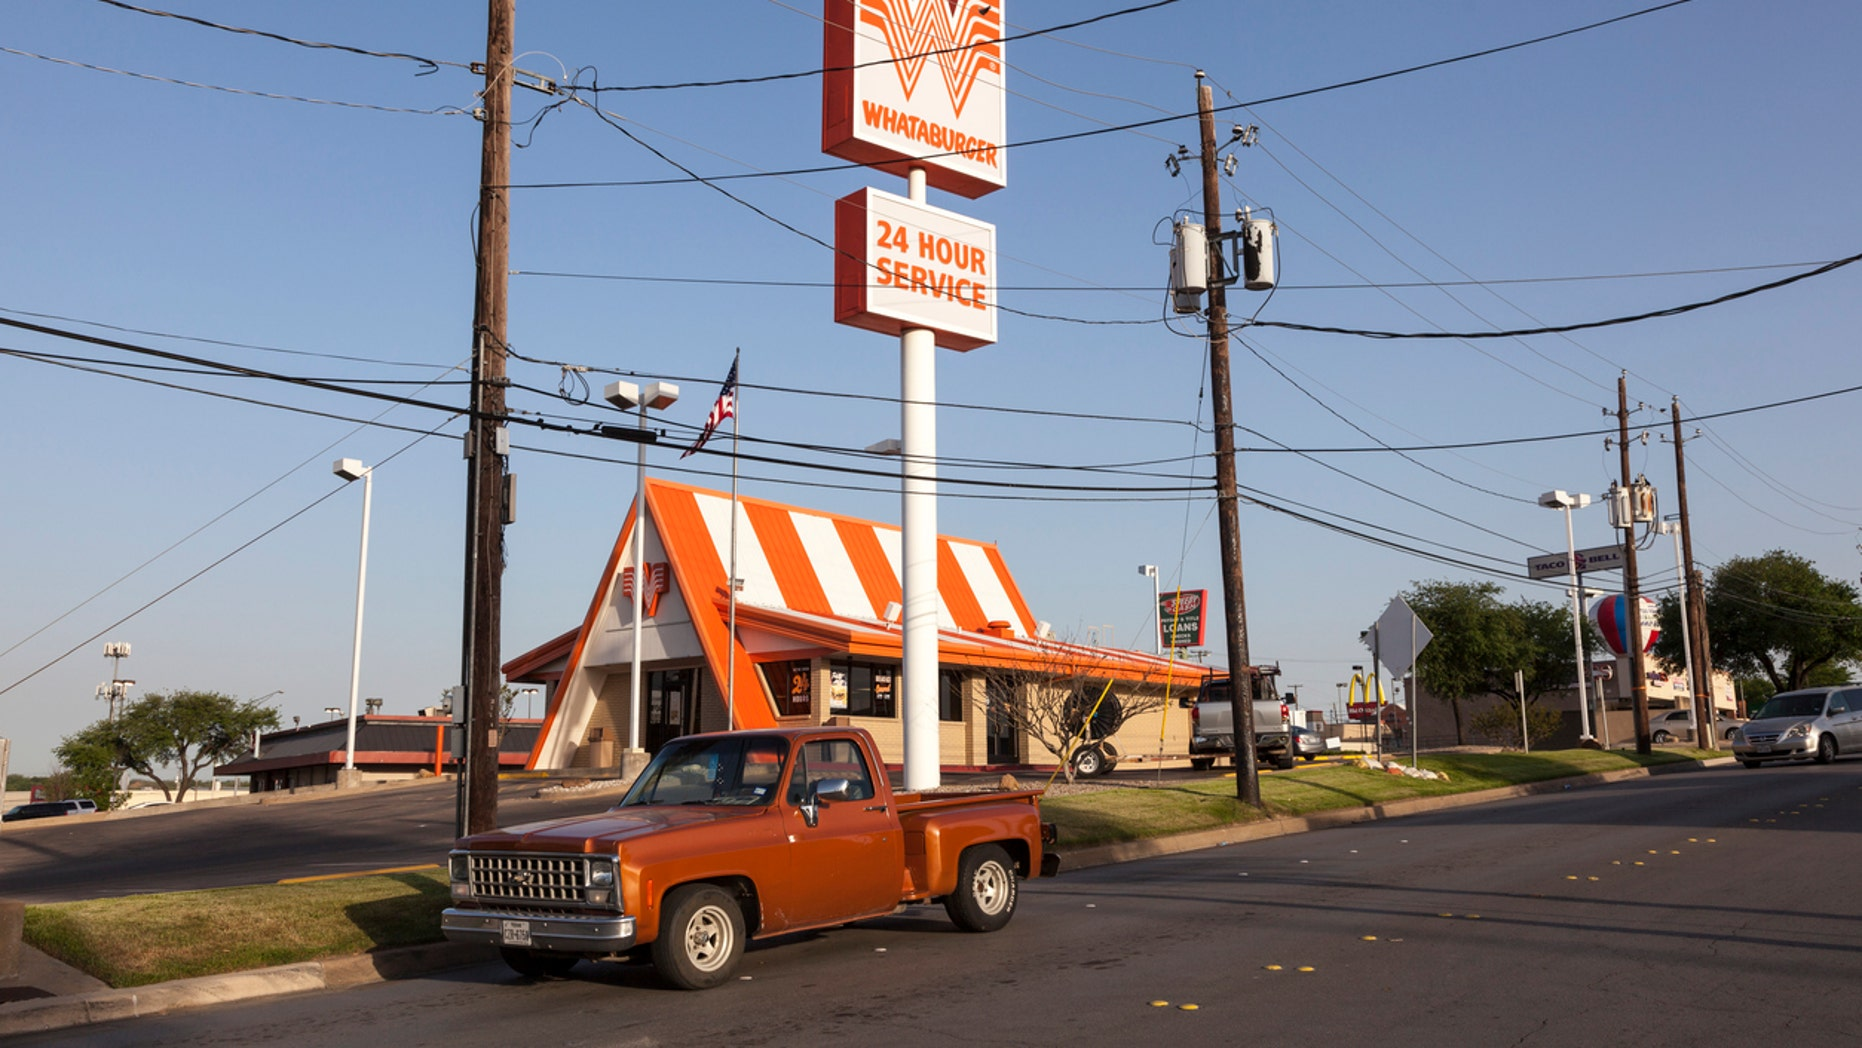 Whataburger operates over 670 locations in Texas.